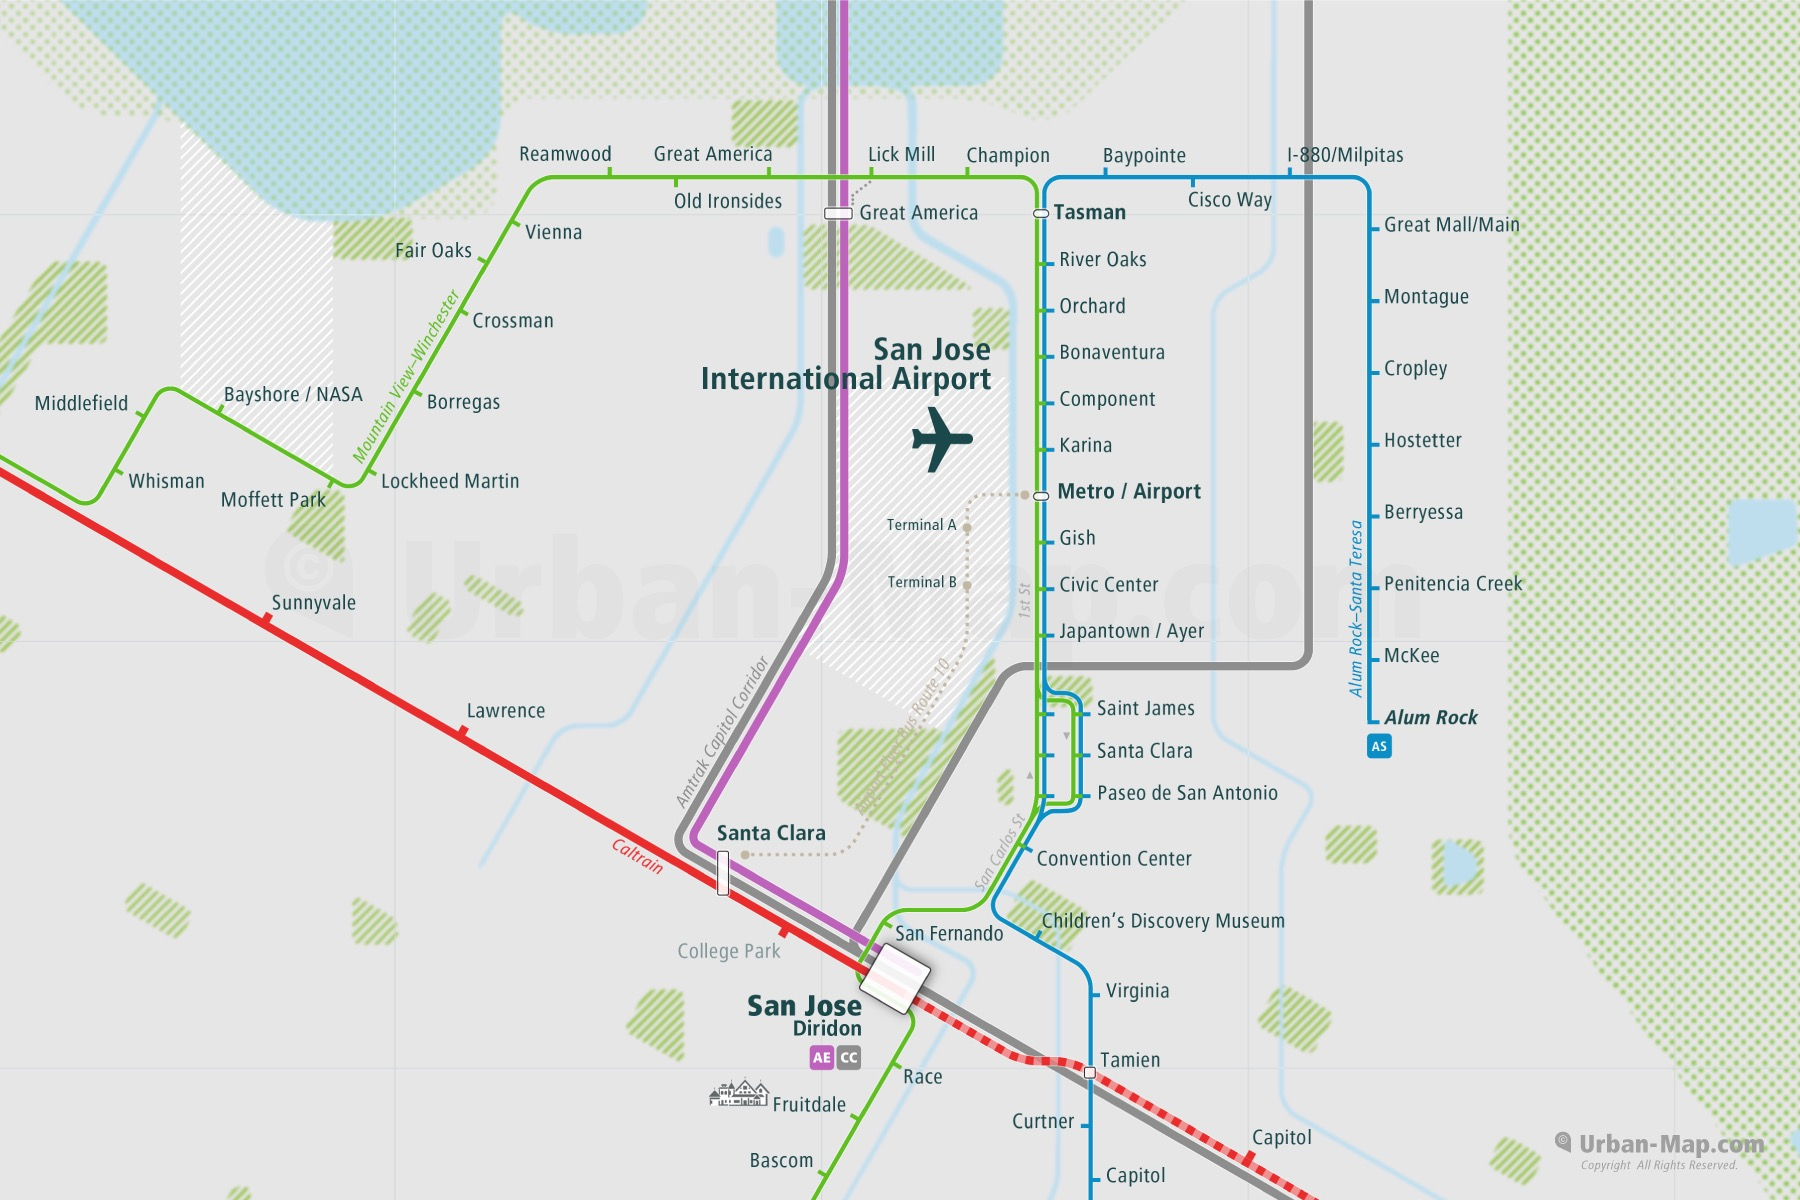 San Jose City Rail Map shows the train and public transportation routes of